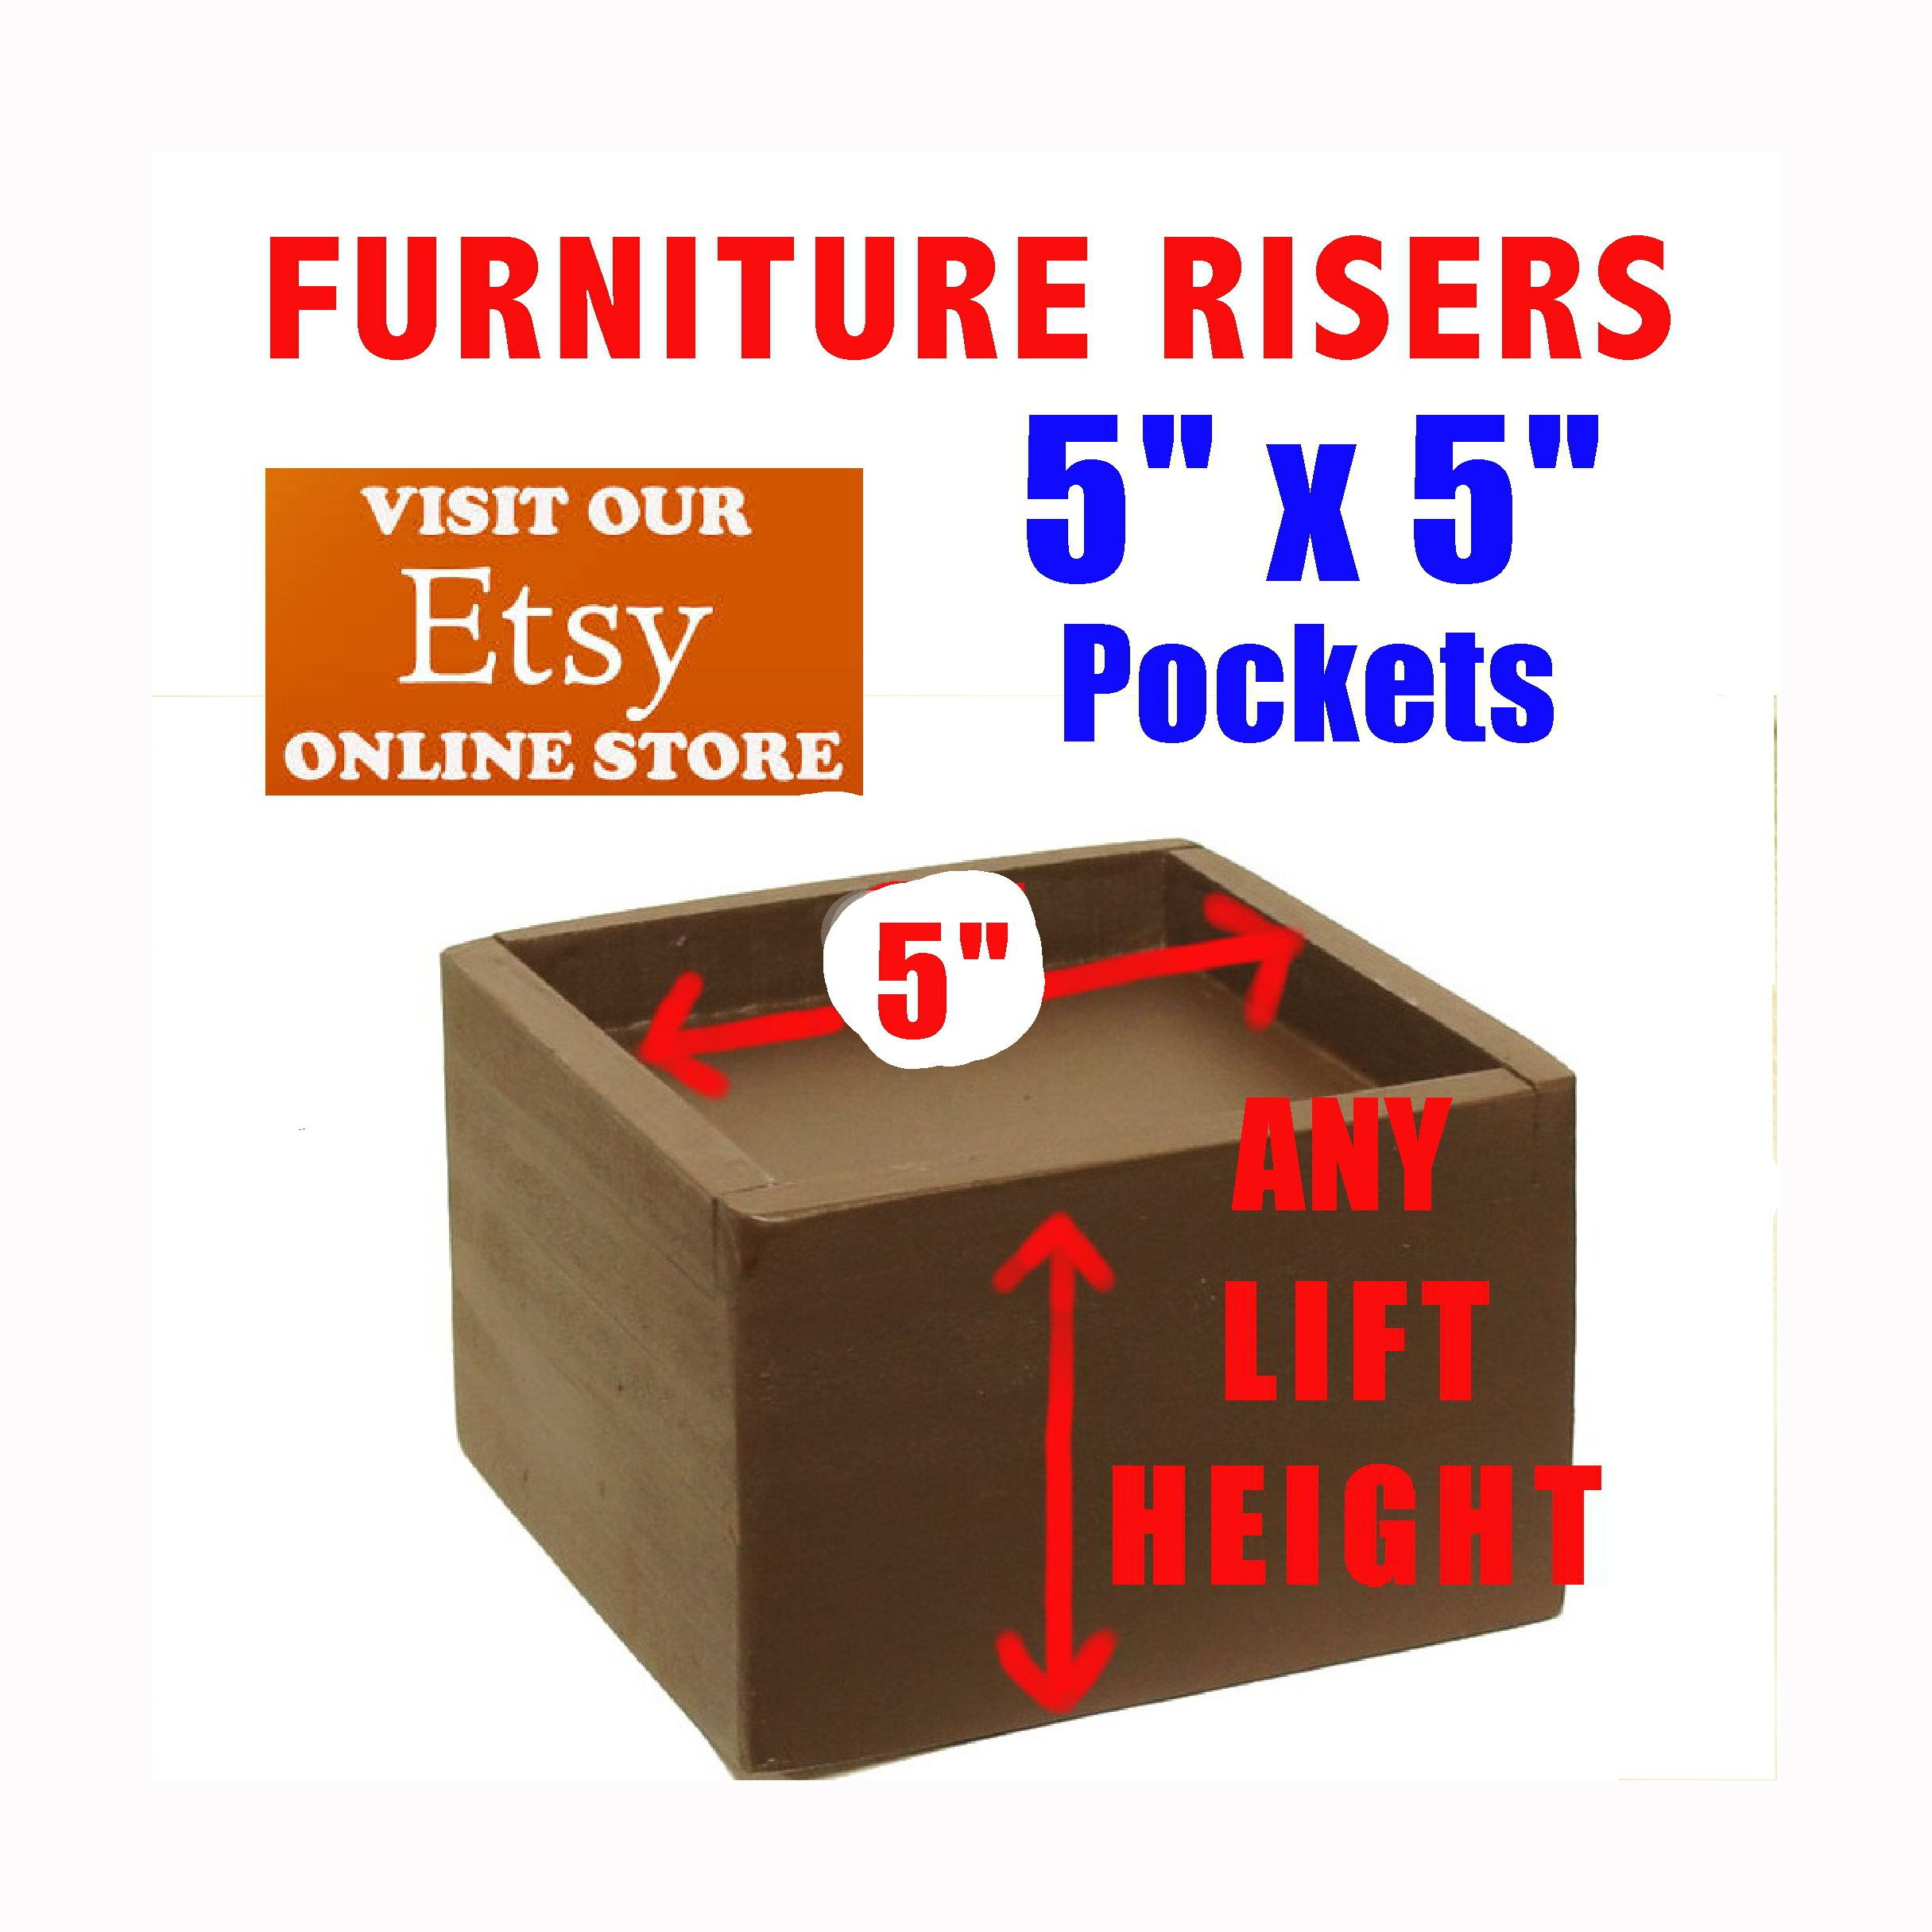 "5"" x 5"" Pocket Furniture and Bed Risers Furniture"